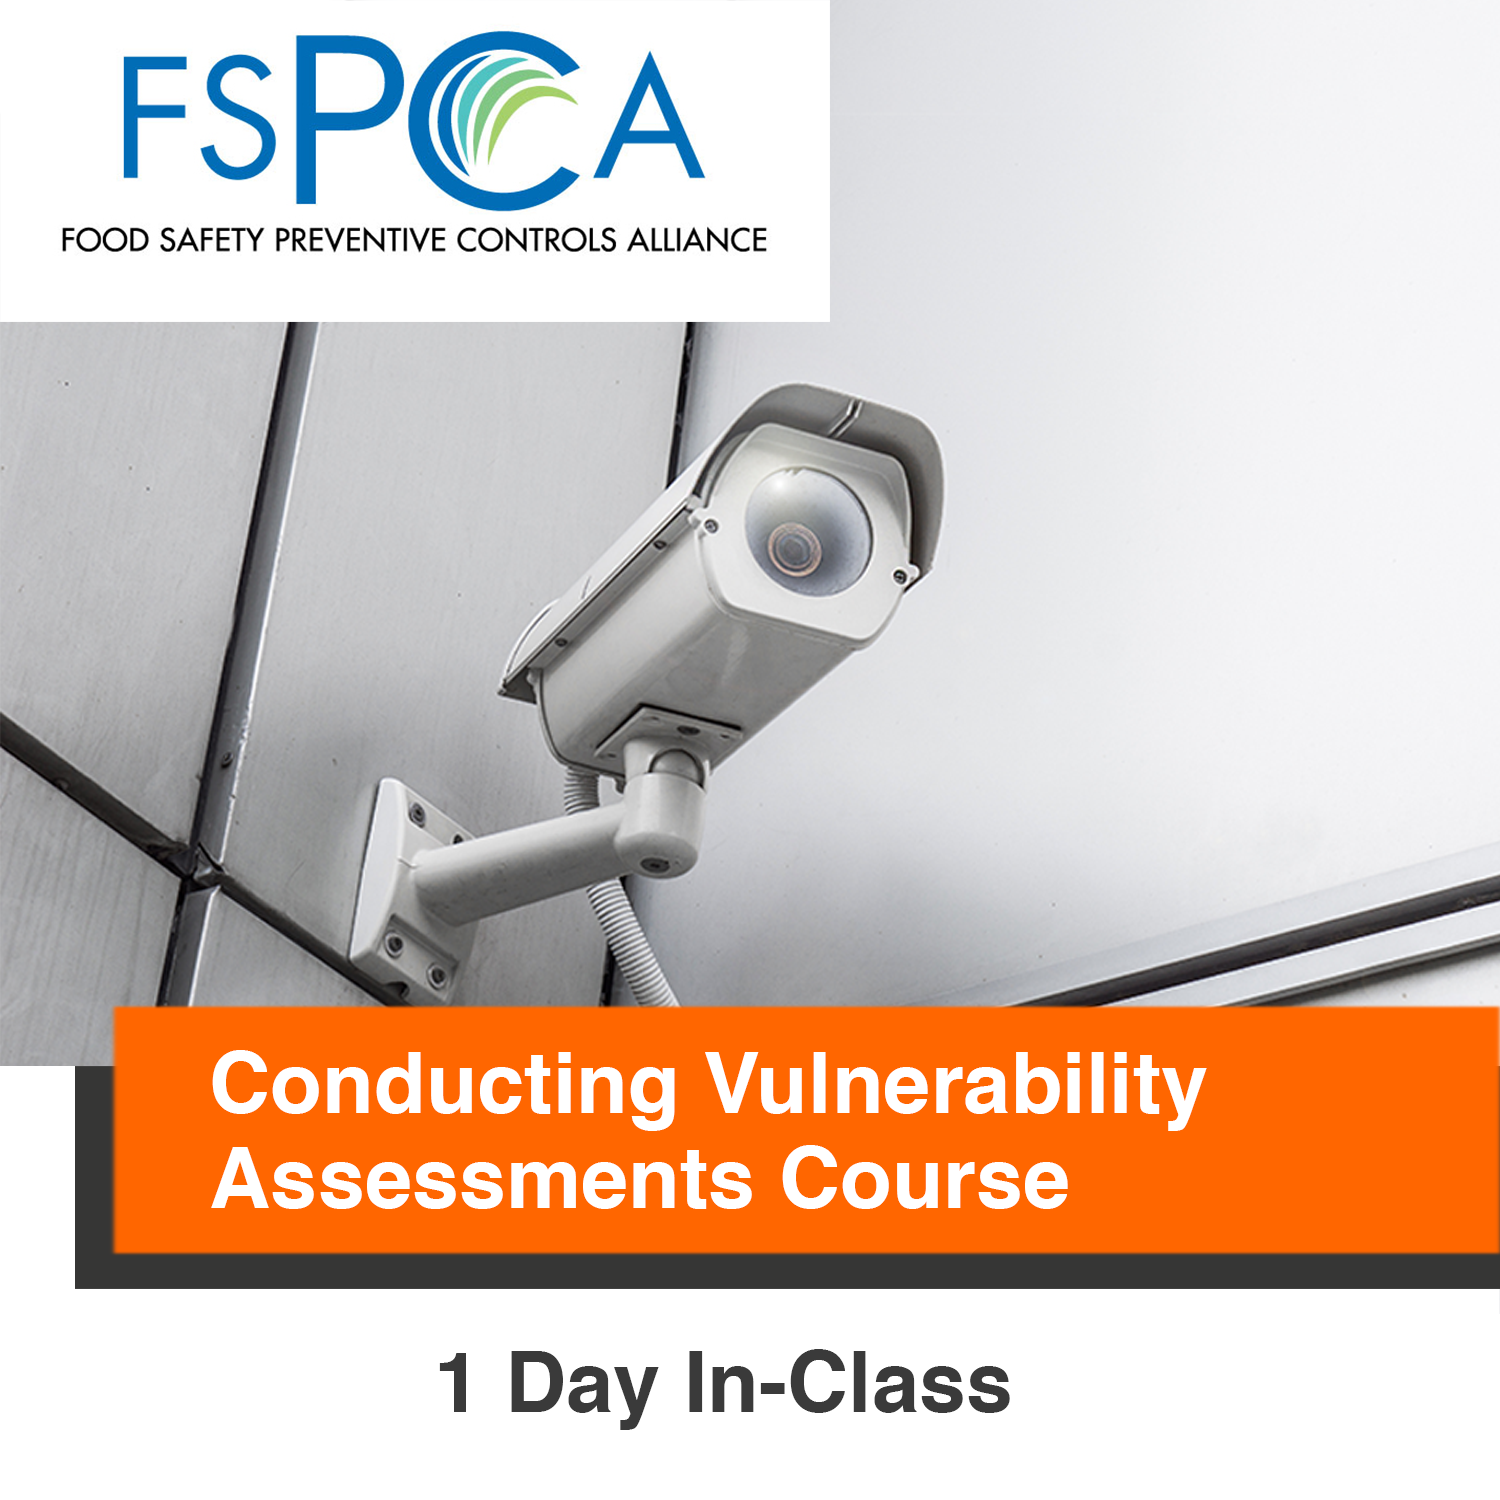 Conducting Vulnerability Assessments Course